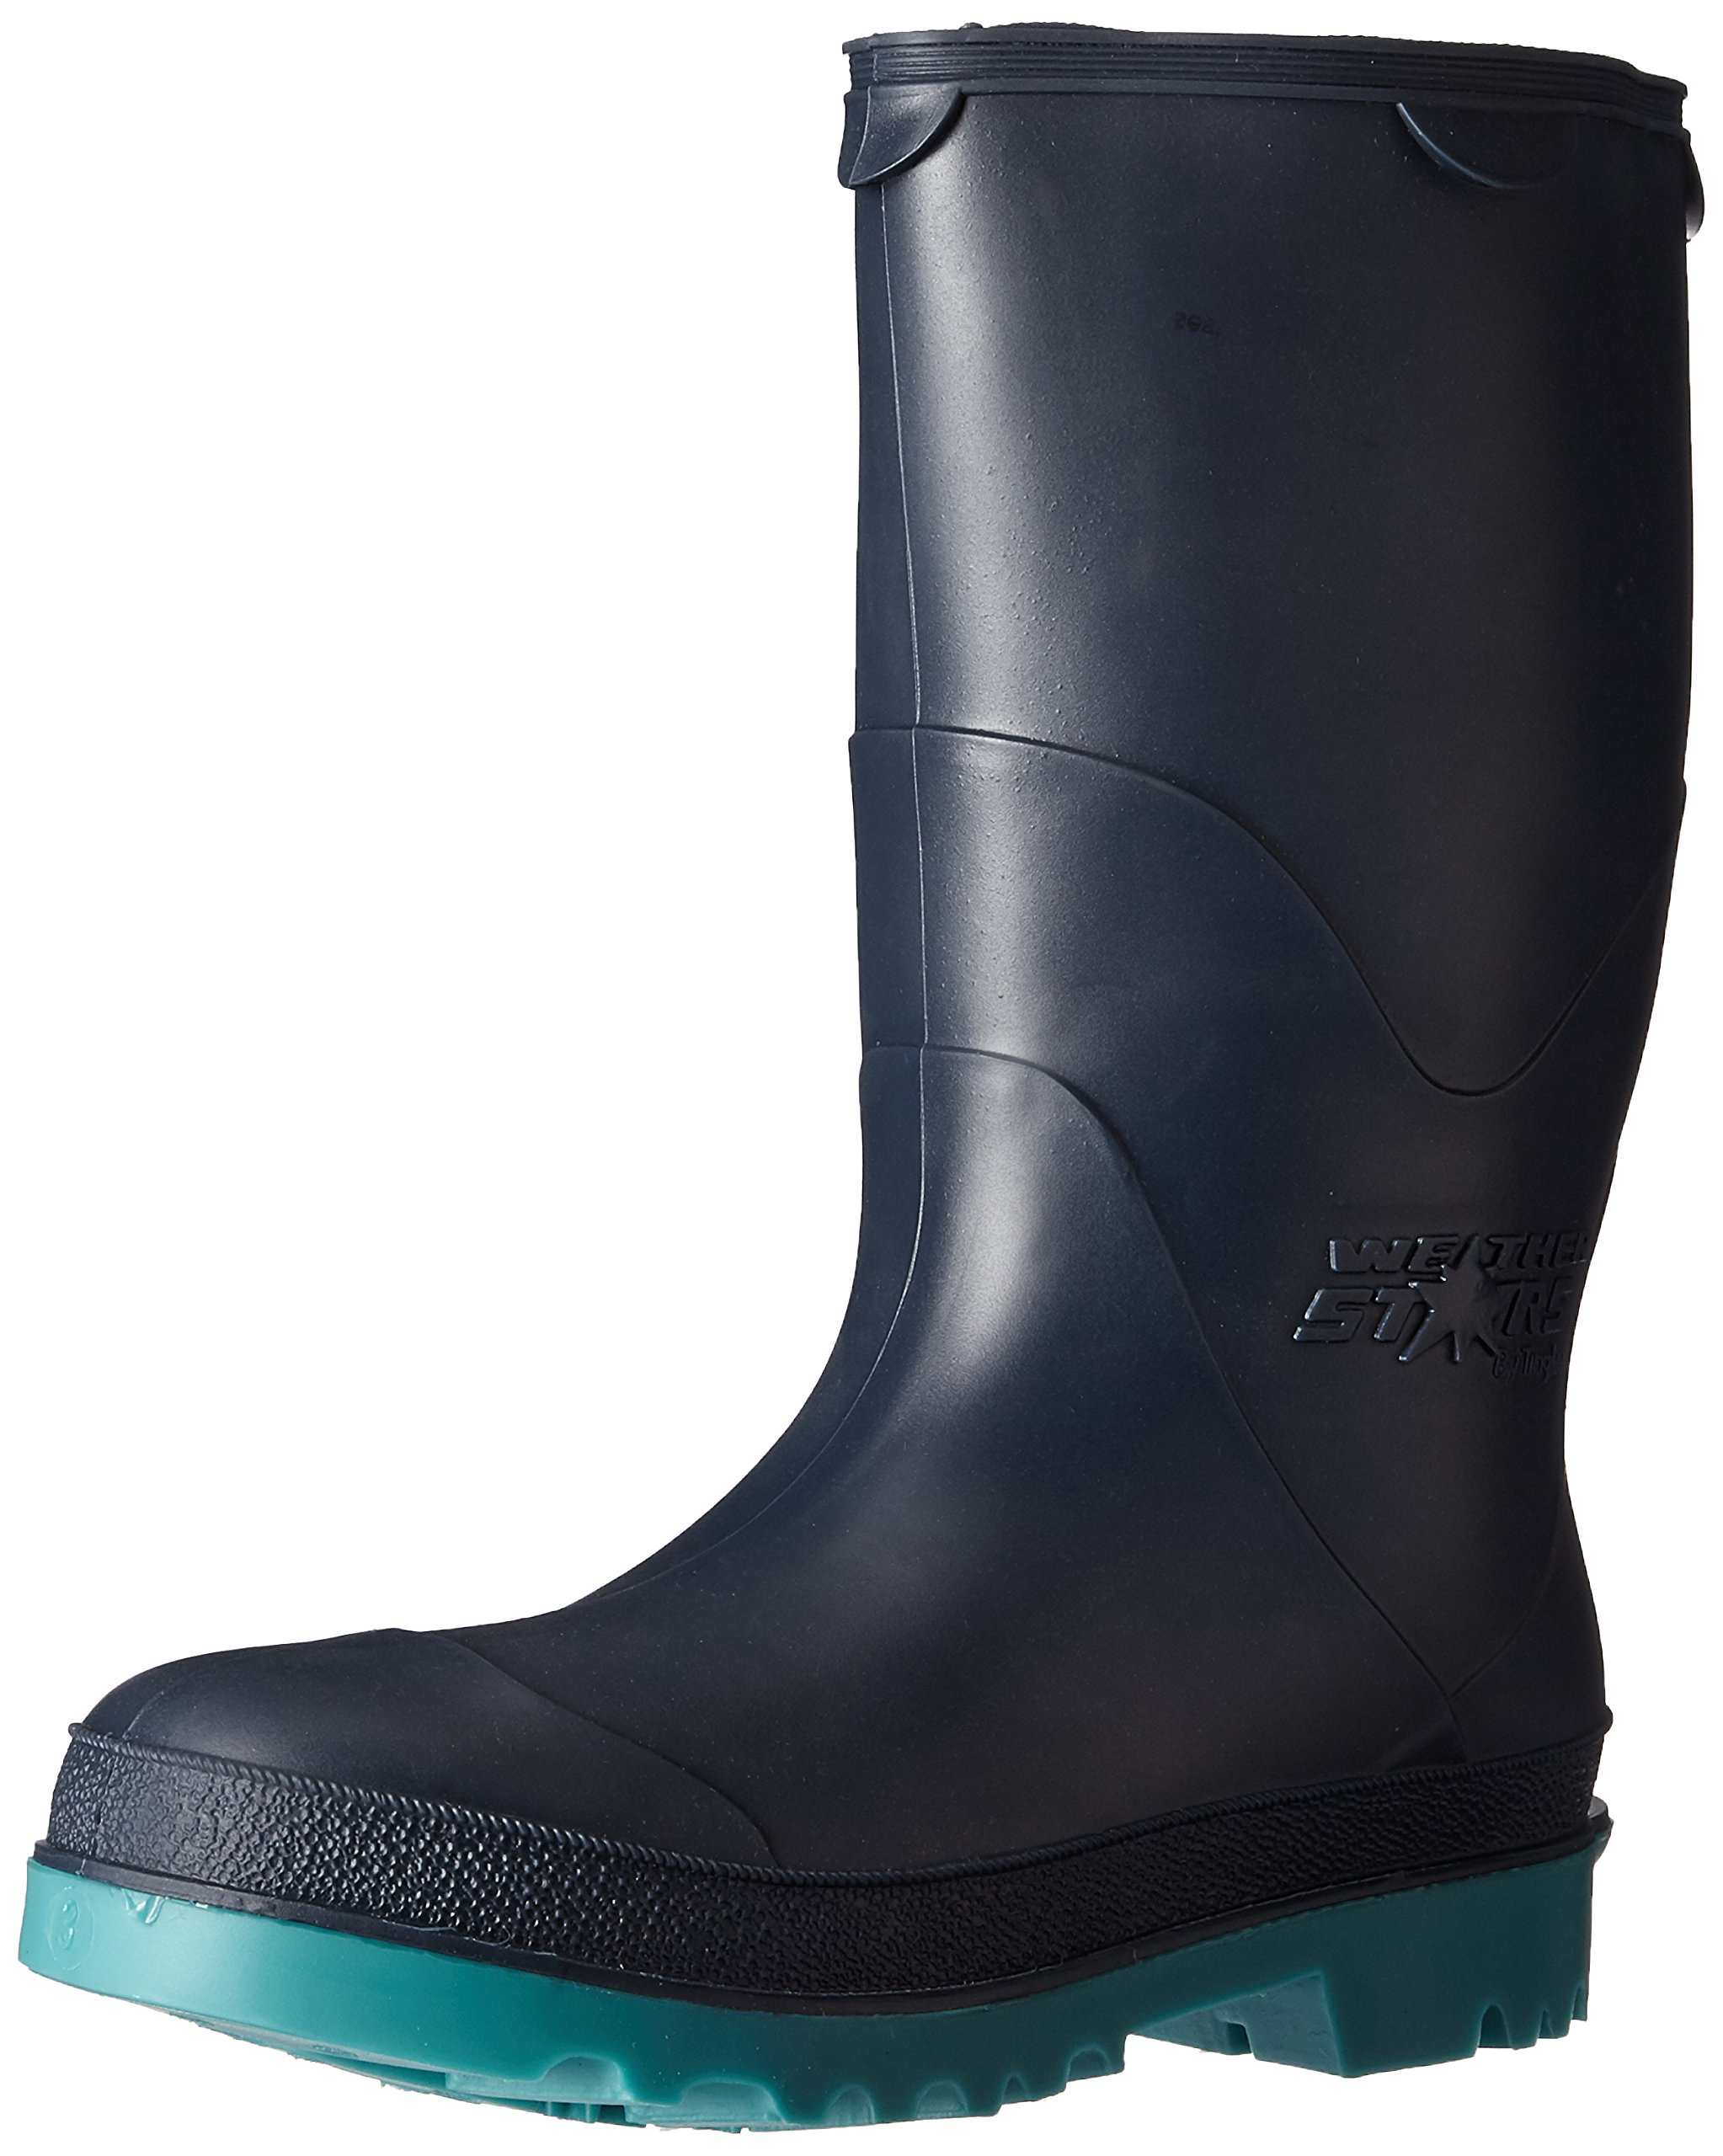 STORMTRACKS 11768.03 Youths' Boot, Size 03, Blue/Green